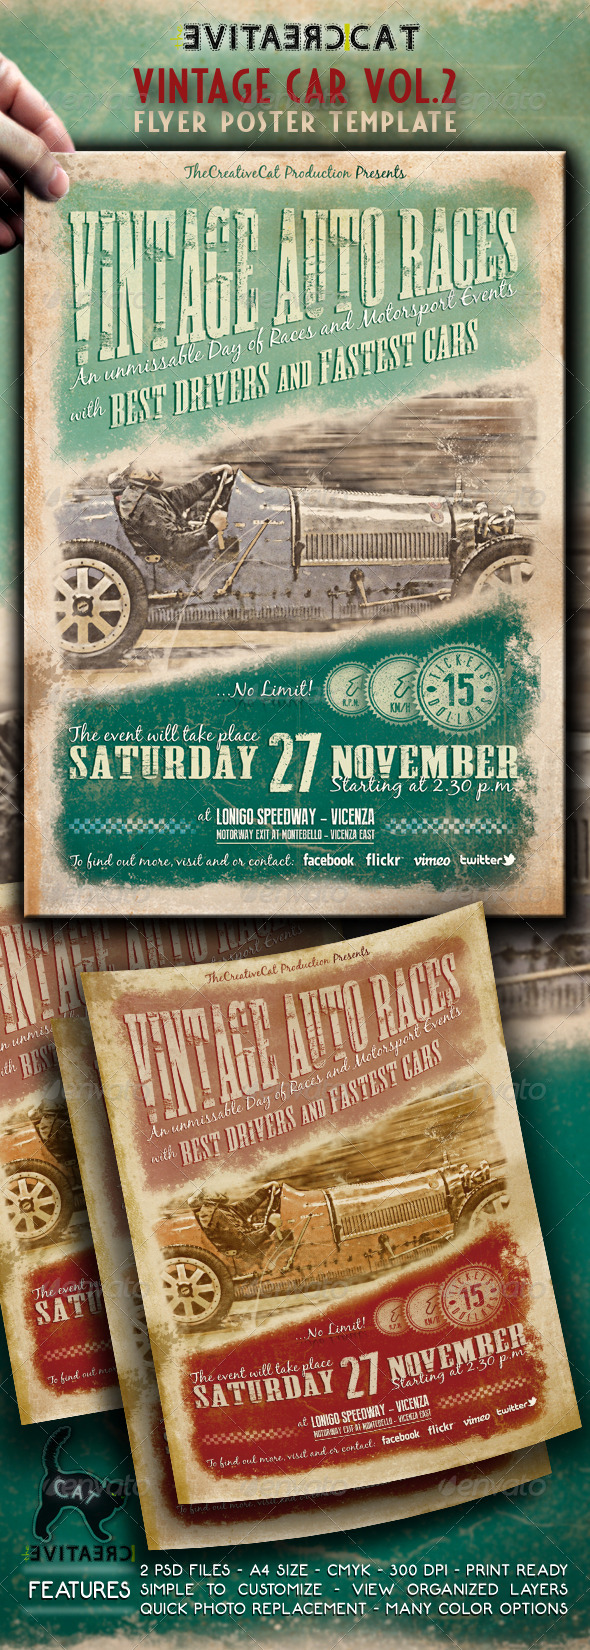 GraphicRiver VINTAGE CAR FLYER POSTER VOL.2 4768375